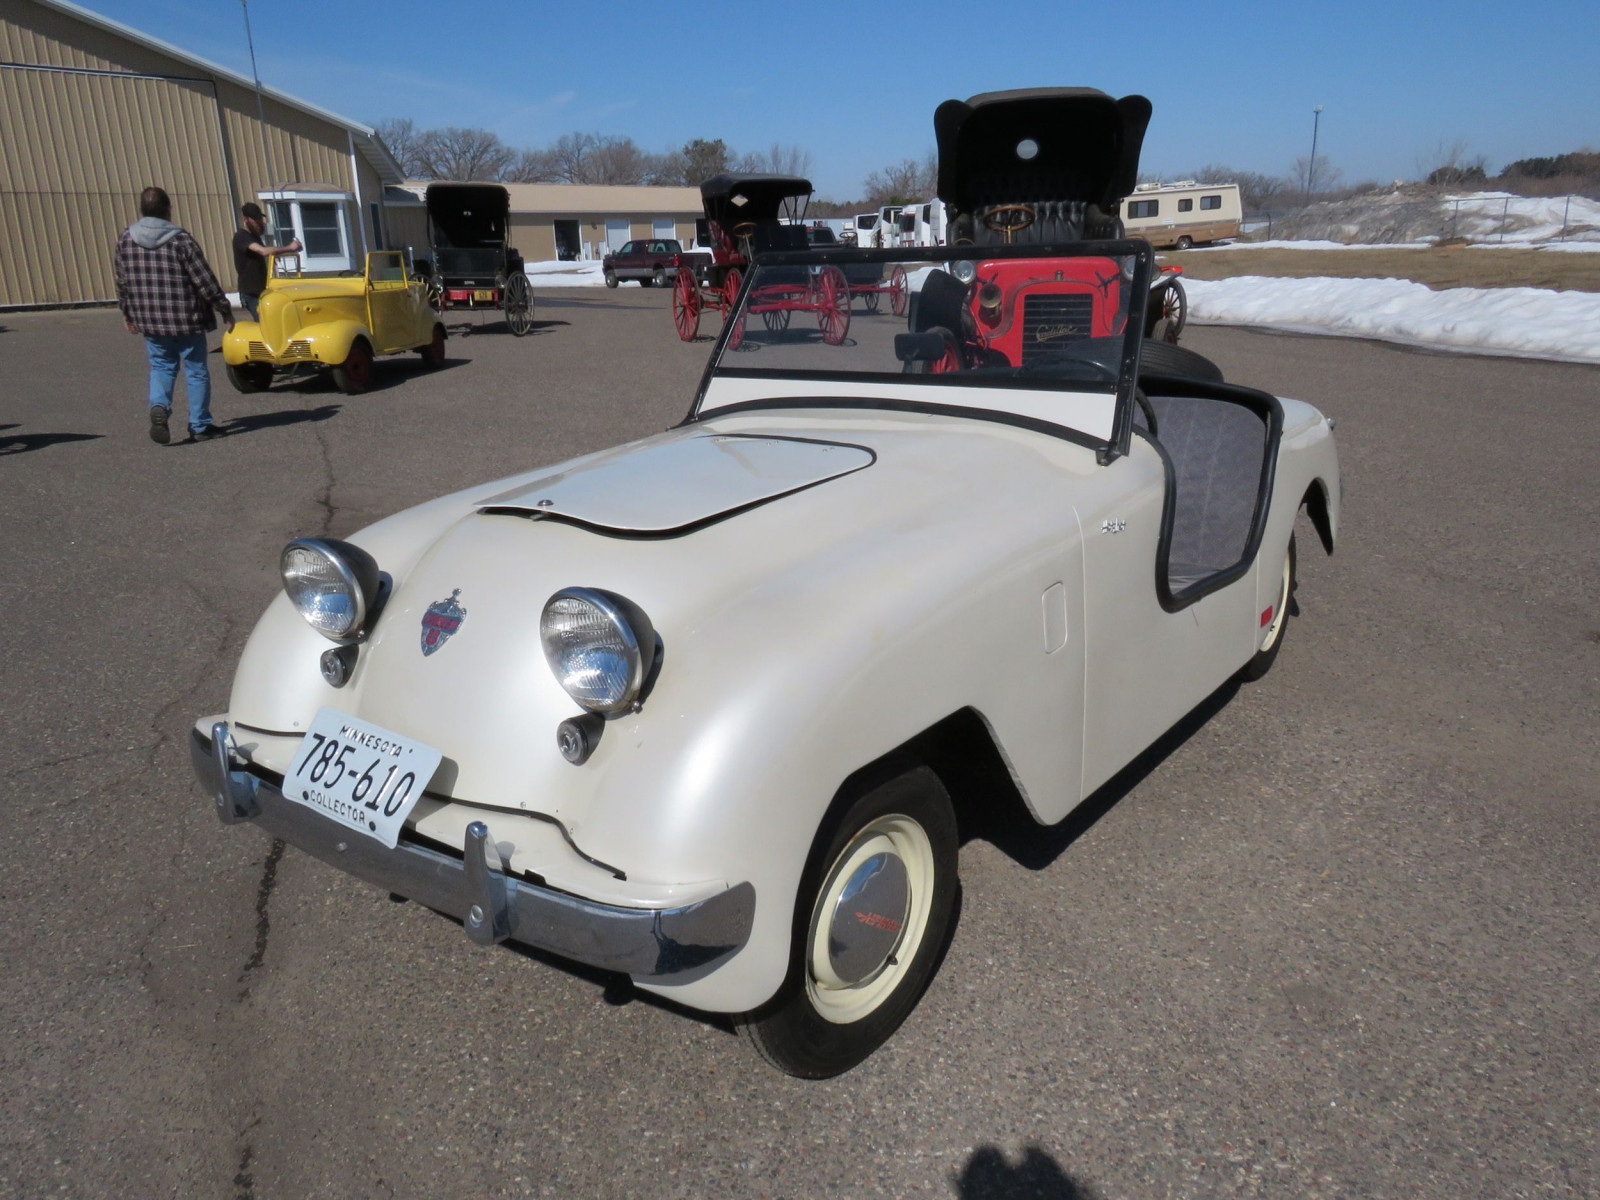 1950 Crosley Hot Shot Roadster - Image 3